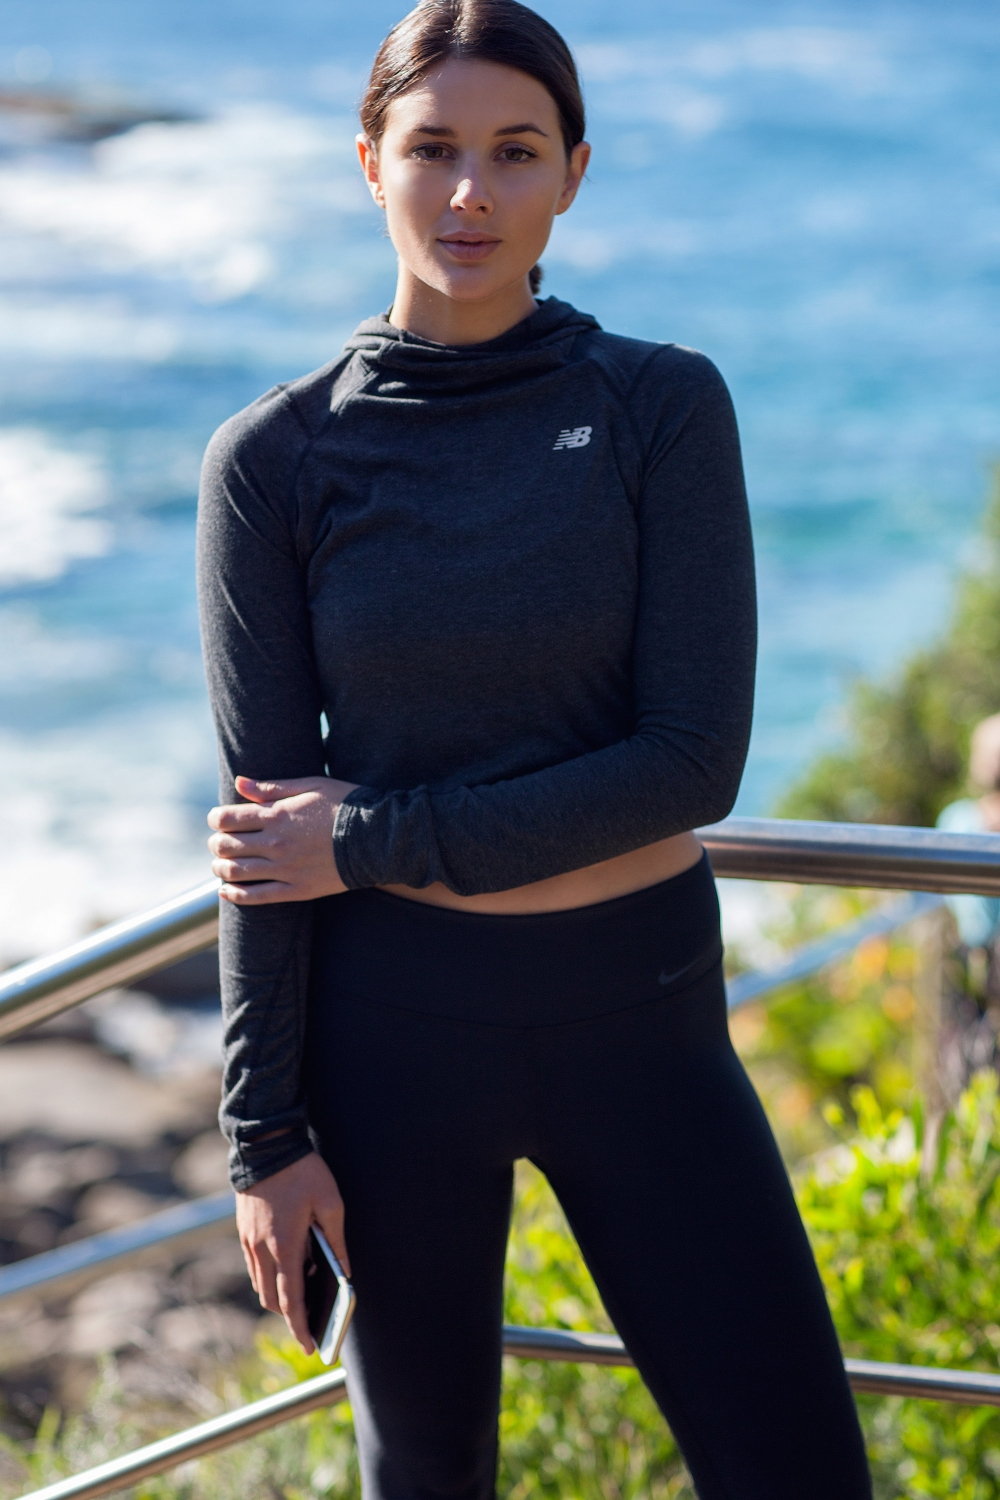 harper-and-harley_sara-donaldson_activewear_health_workout_gym_New-Balance_Nike_4